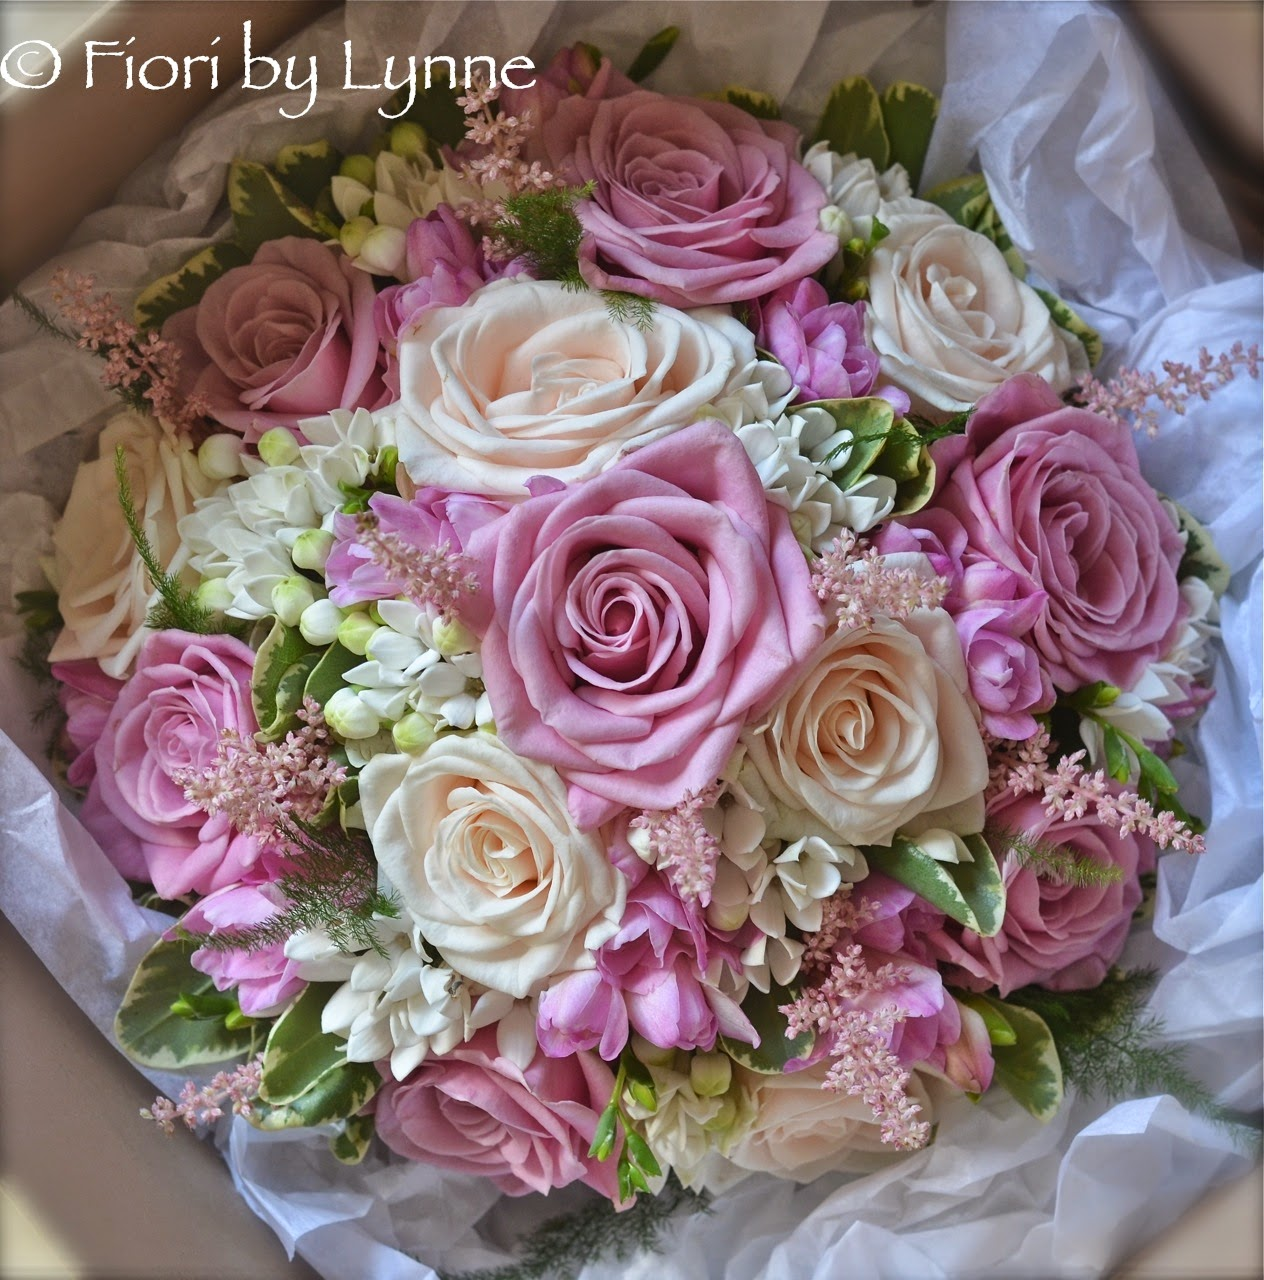 Wedding Flowers Blog: Edy\'s Vintage Pink and Cream Wedding Flowers ...